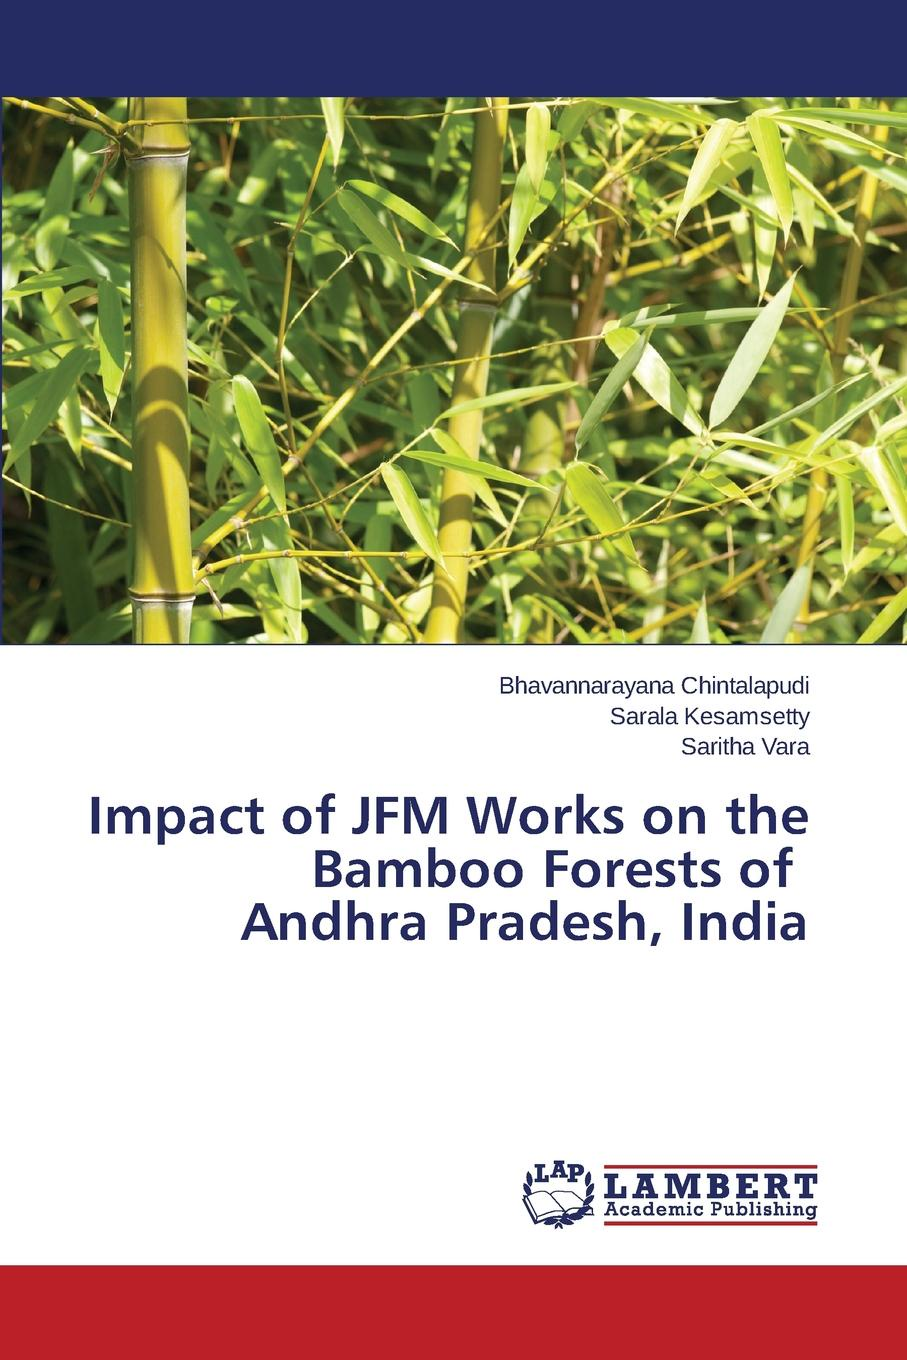 где купить Chintalapudi Bhavannarayana, Kesamsetty Sarala, Vara Saritha Impact of JFM Works on the Bamboo Forests of Andhra Pradesh, India недорого с доставкой